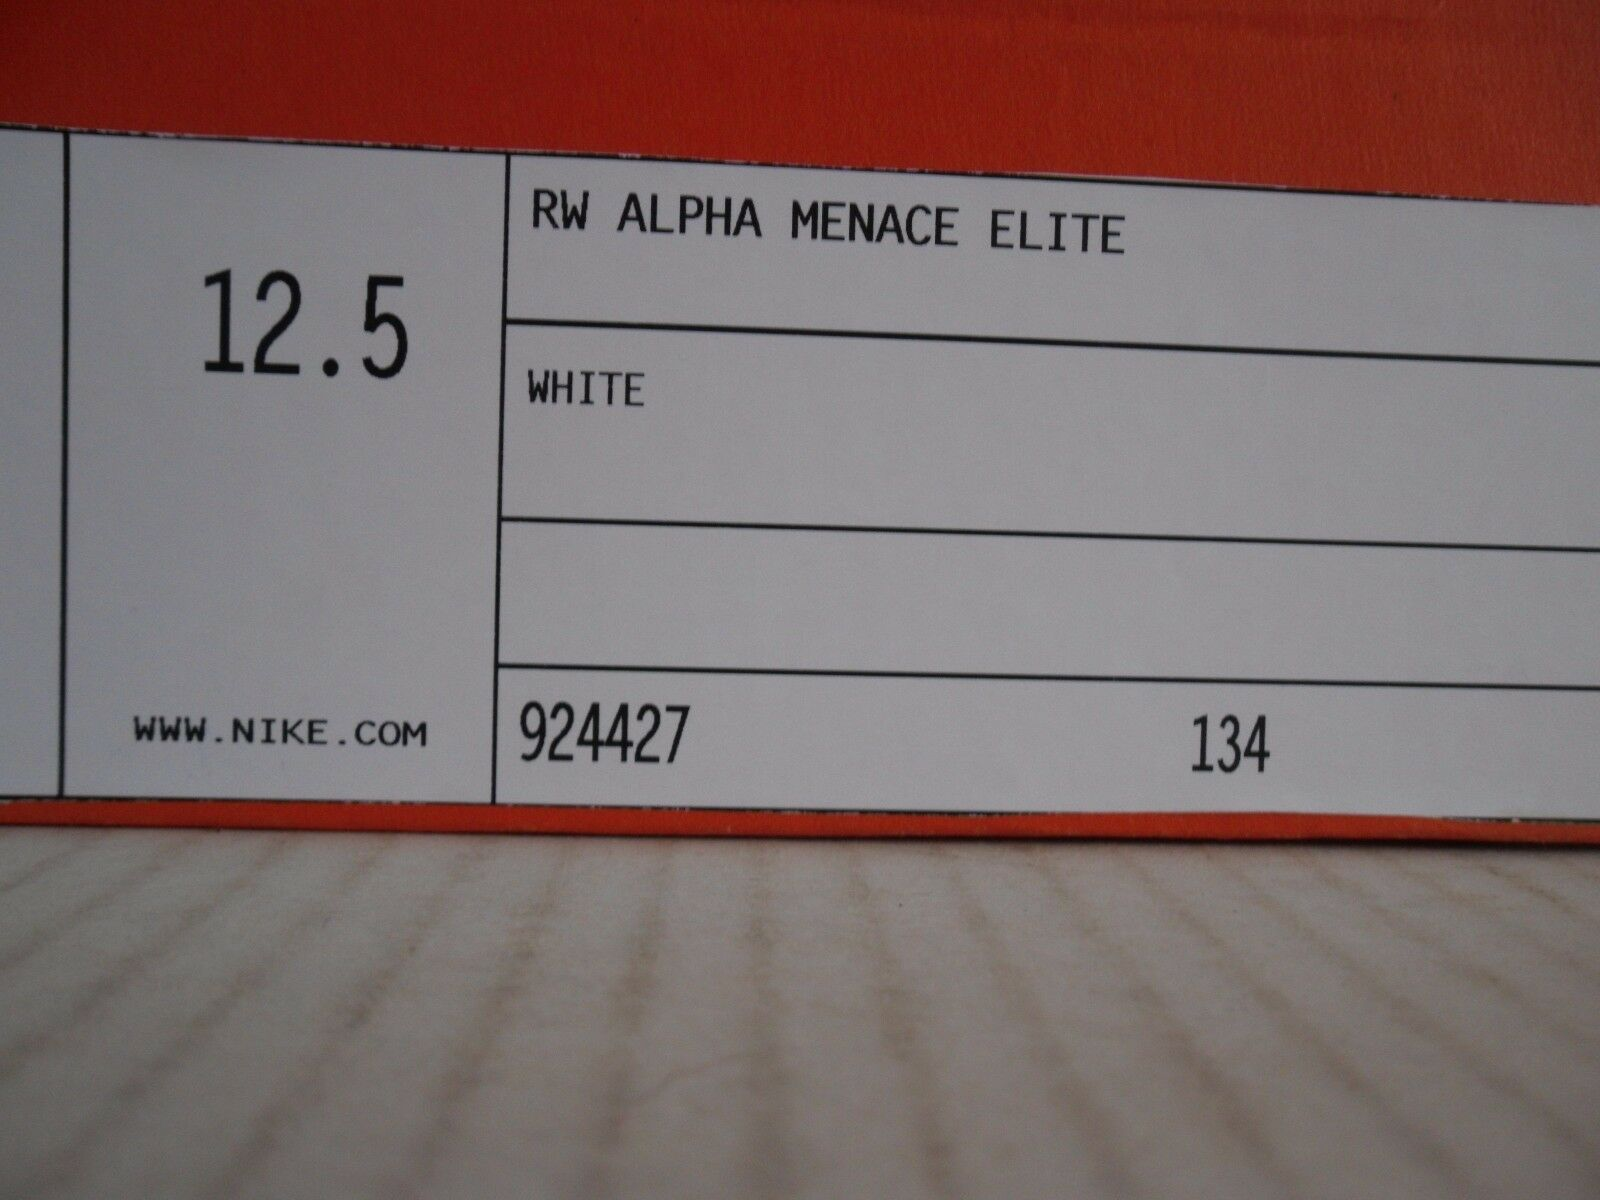 3e217ff0a79 Nike Alpha Menace Elite Russell Wilson Cleat Size 12.5 W  Autograph   2   12  for sale online